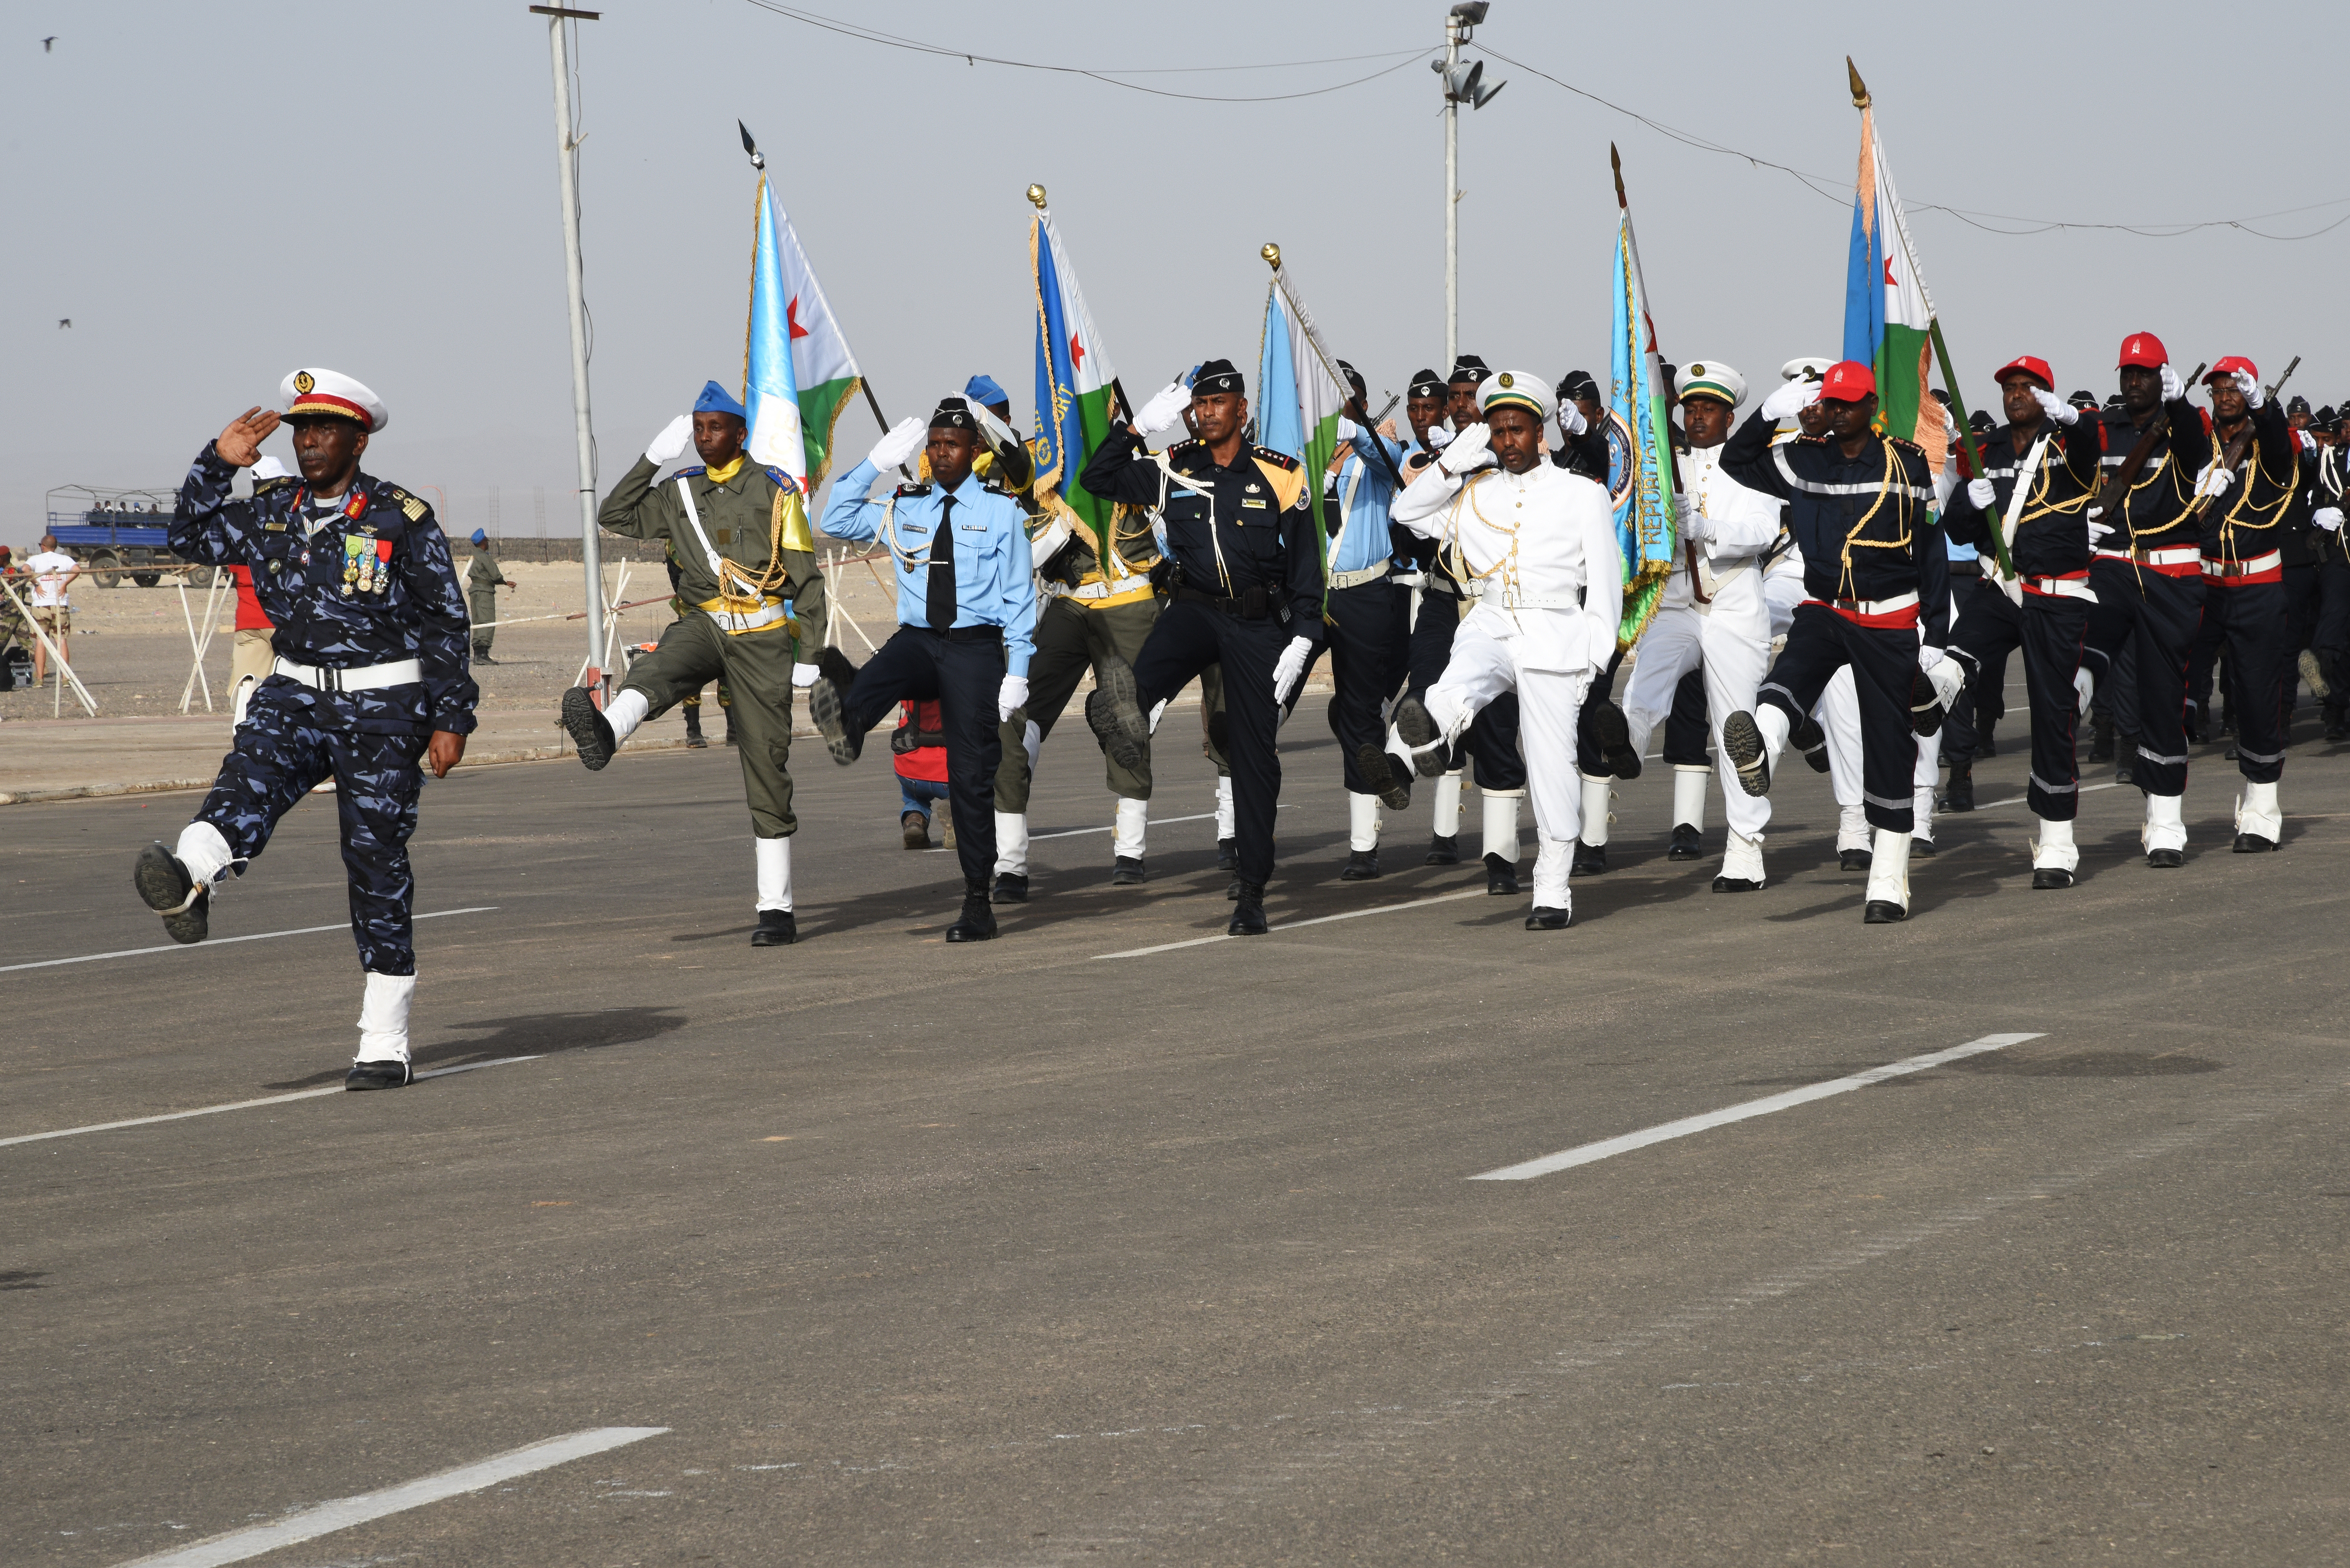 Djibouti's military, law enforcement and civil servants march along a parade route during a Djibouti Independence Day celebration June 27, 2015.  On that day, in 1977, Djibouti gained its independence from France.   (U.S. Air Force photos by Staff Sgt. Maria Bowman)